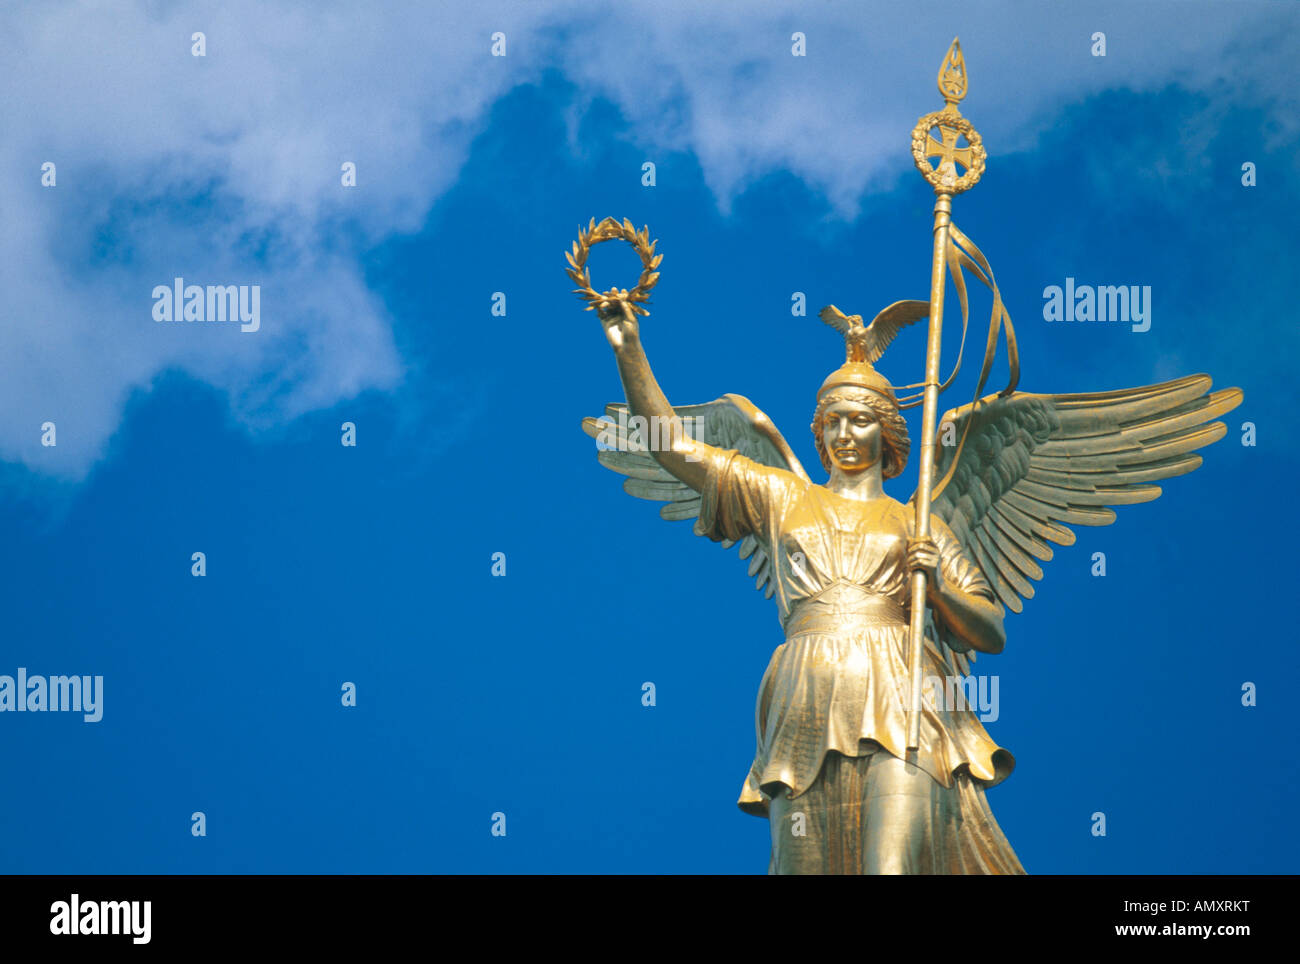 Goddess Of Victory Stock Photos Goddess Of Victory Stock Images